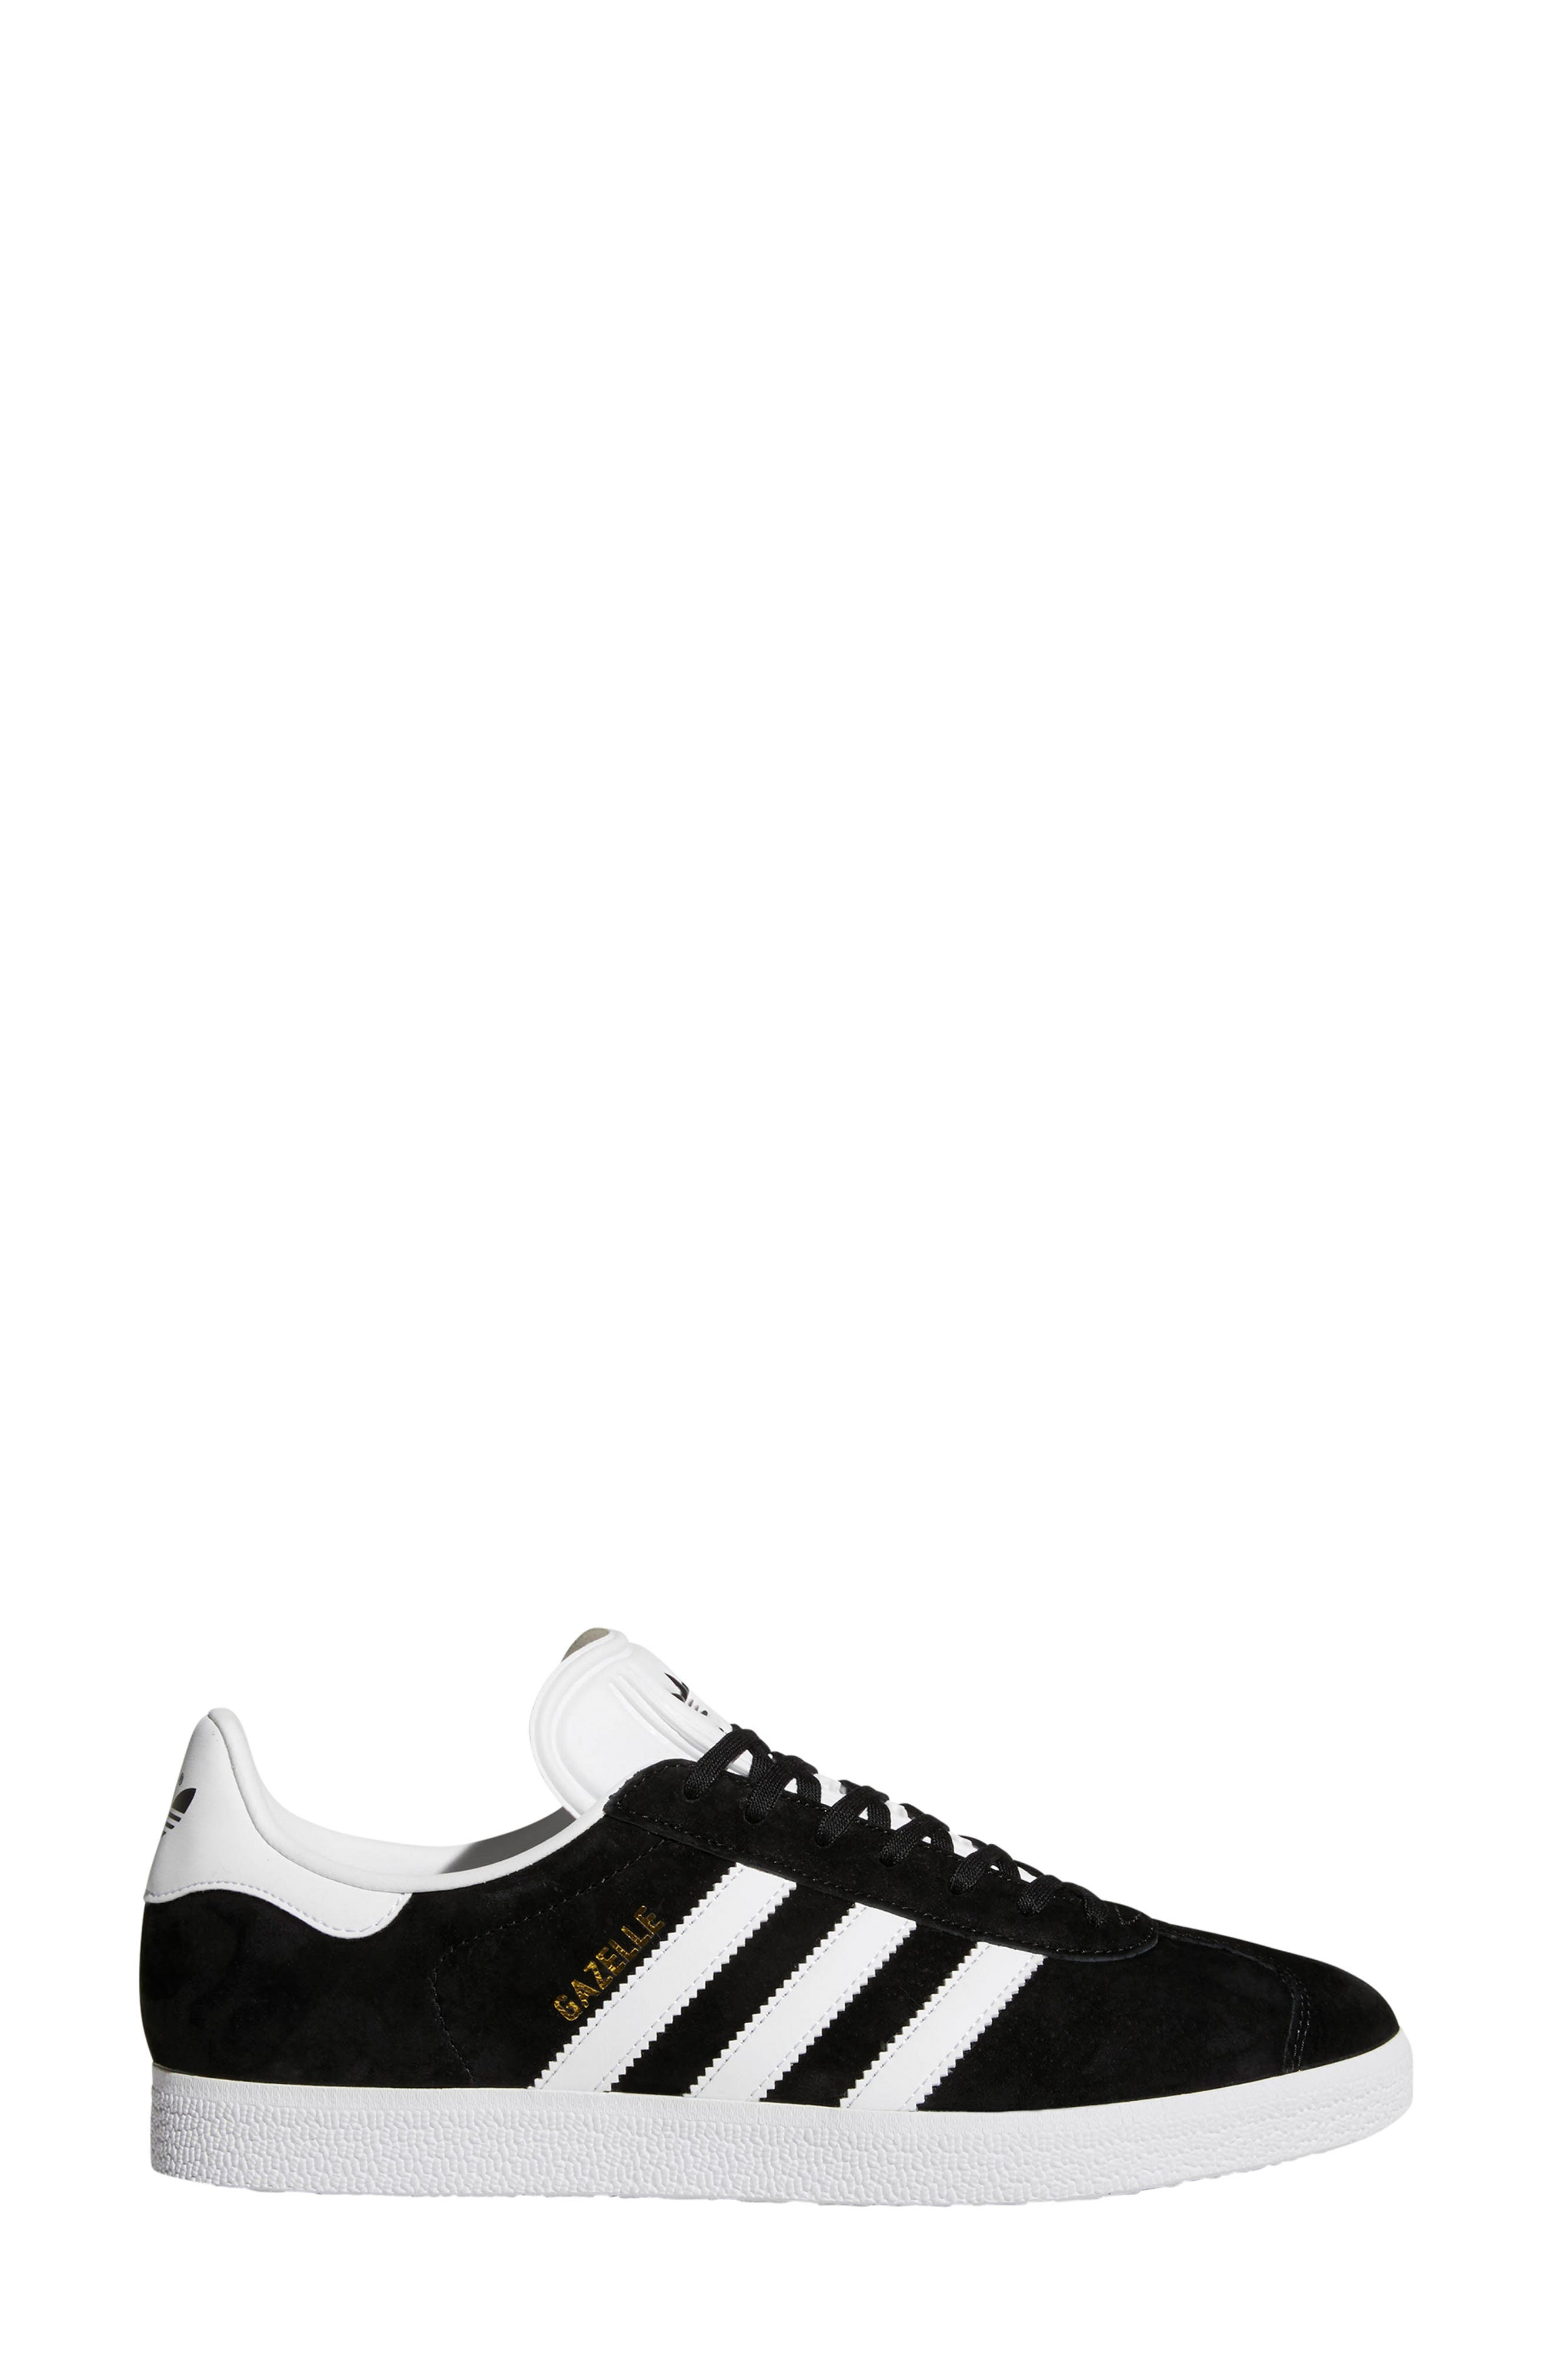 ADIDAS, Gazelle Sneaker, Alternate thumbnail 3, color, 003